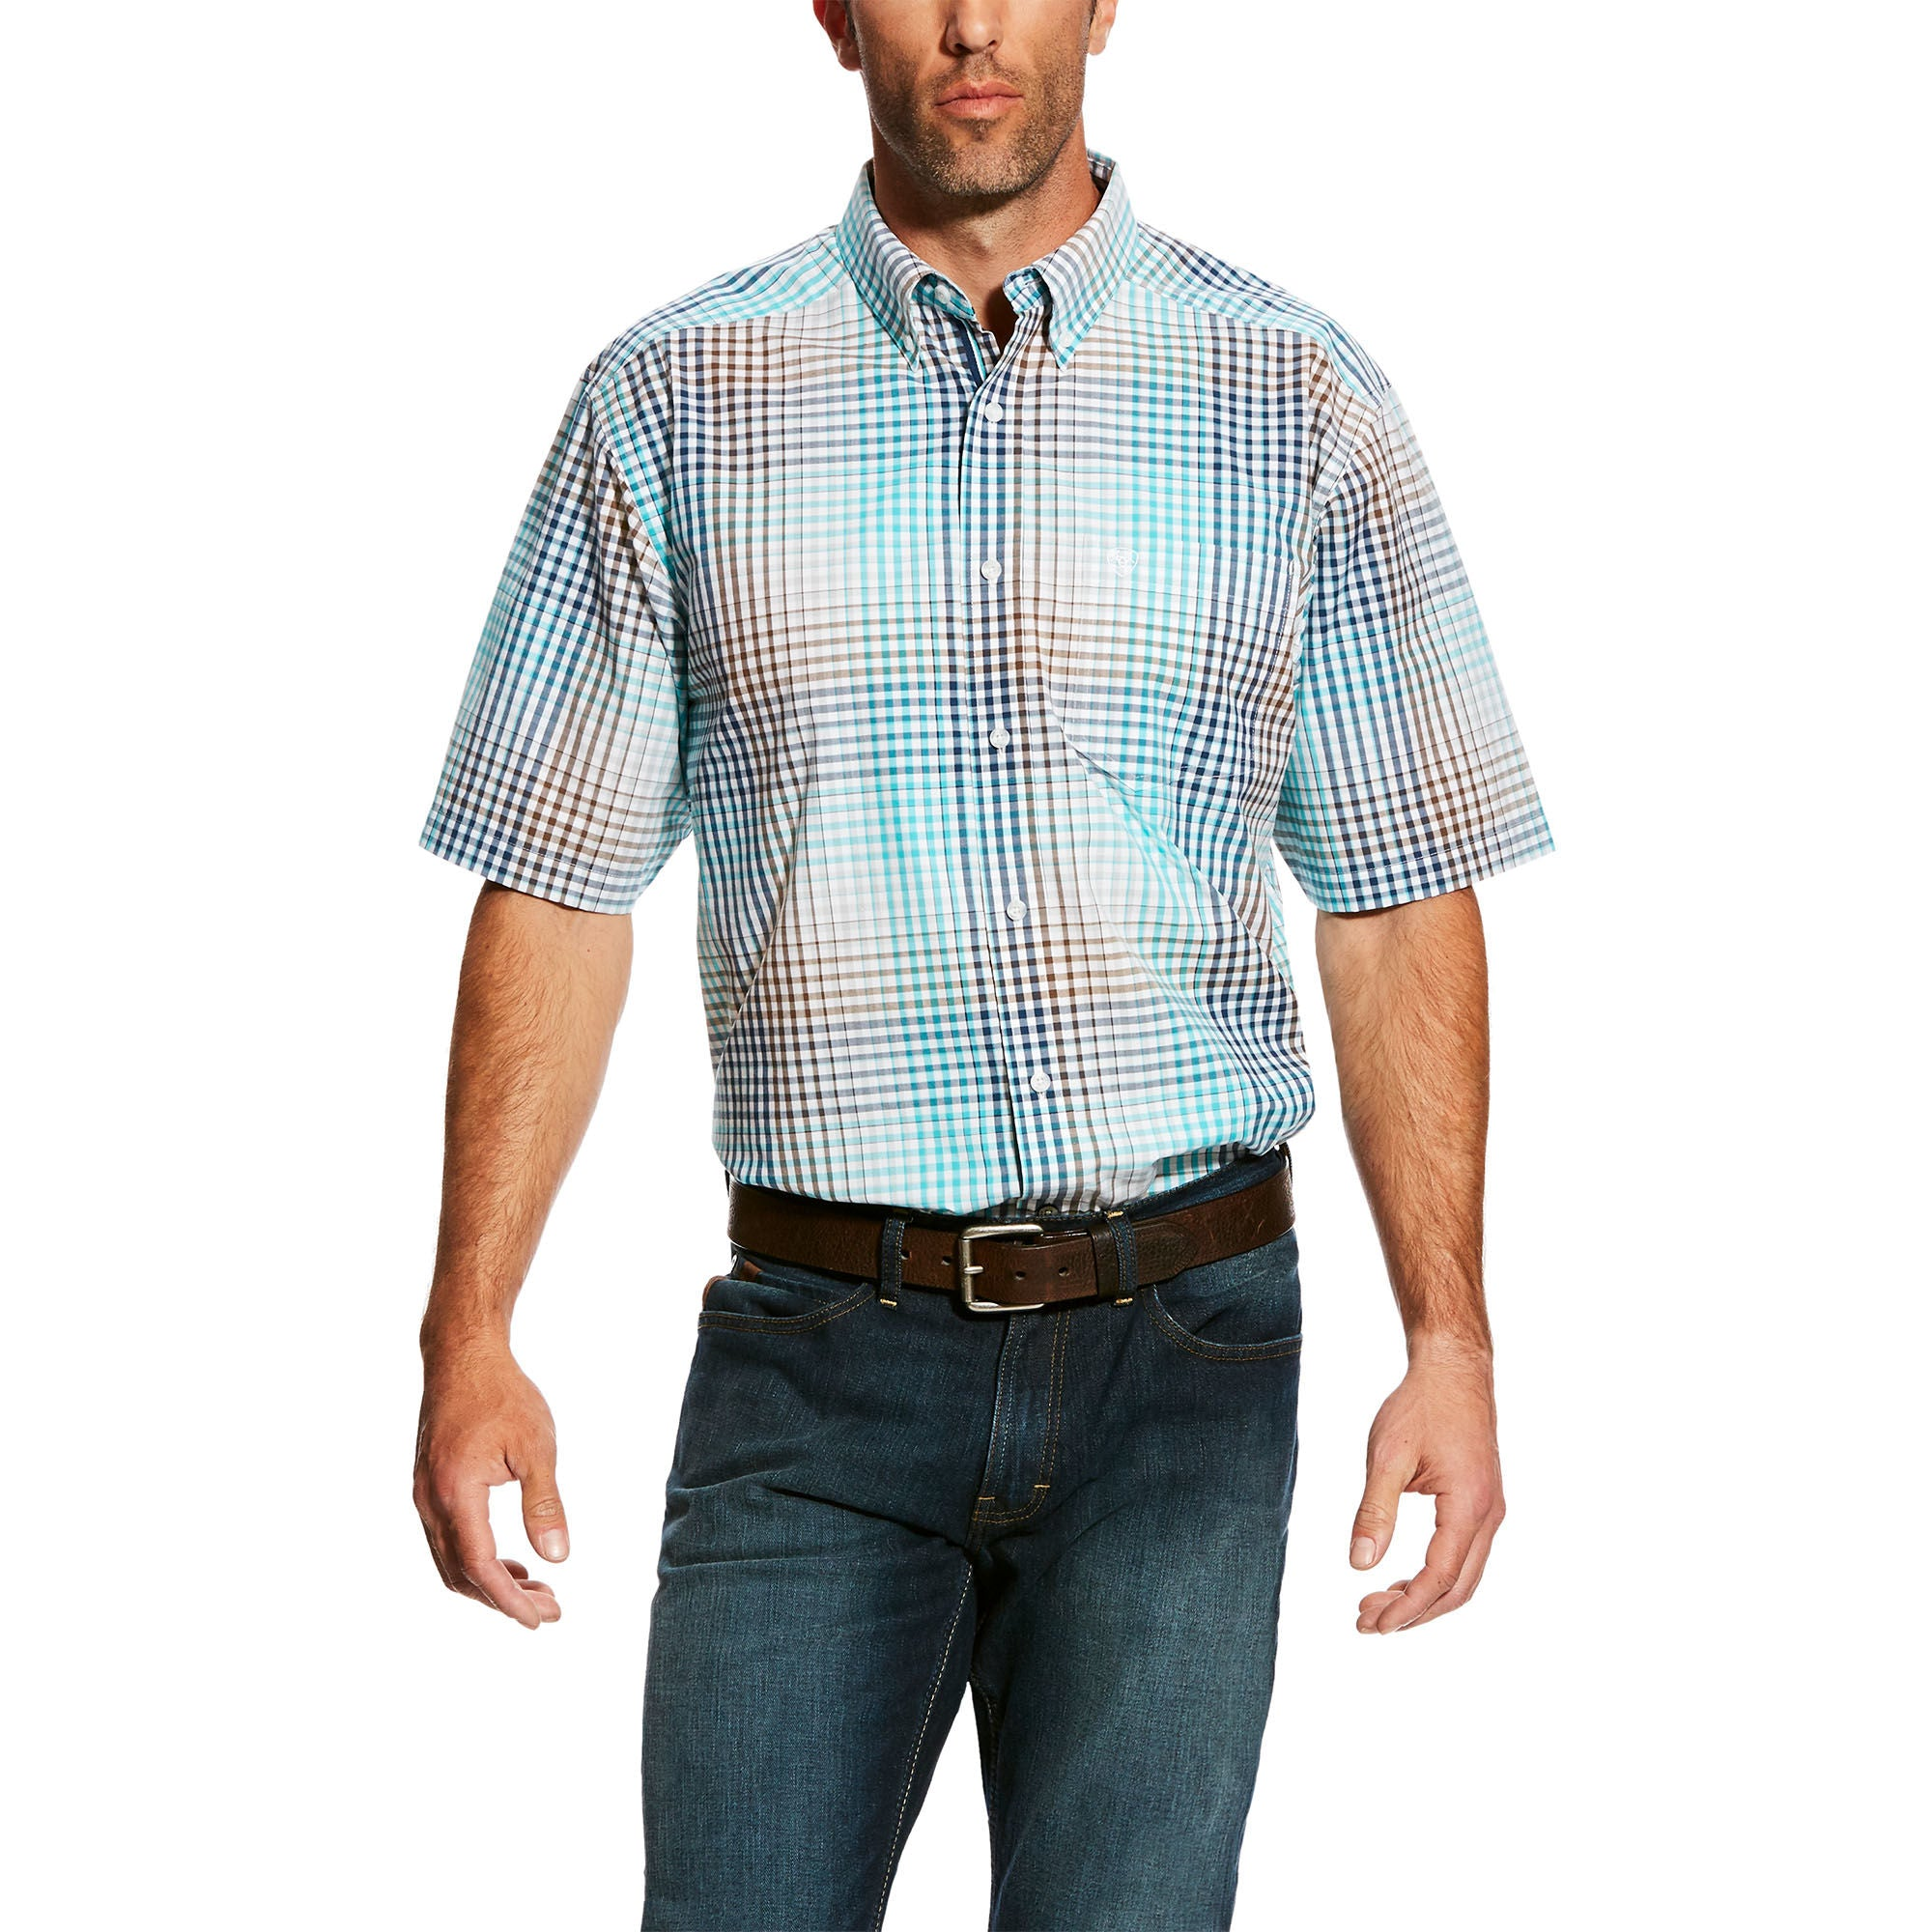 Ariat Harby Turquoise Plaid Short Sleeve Men's Shirt